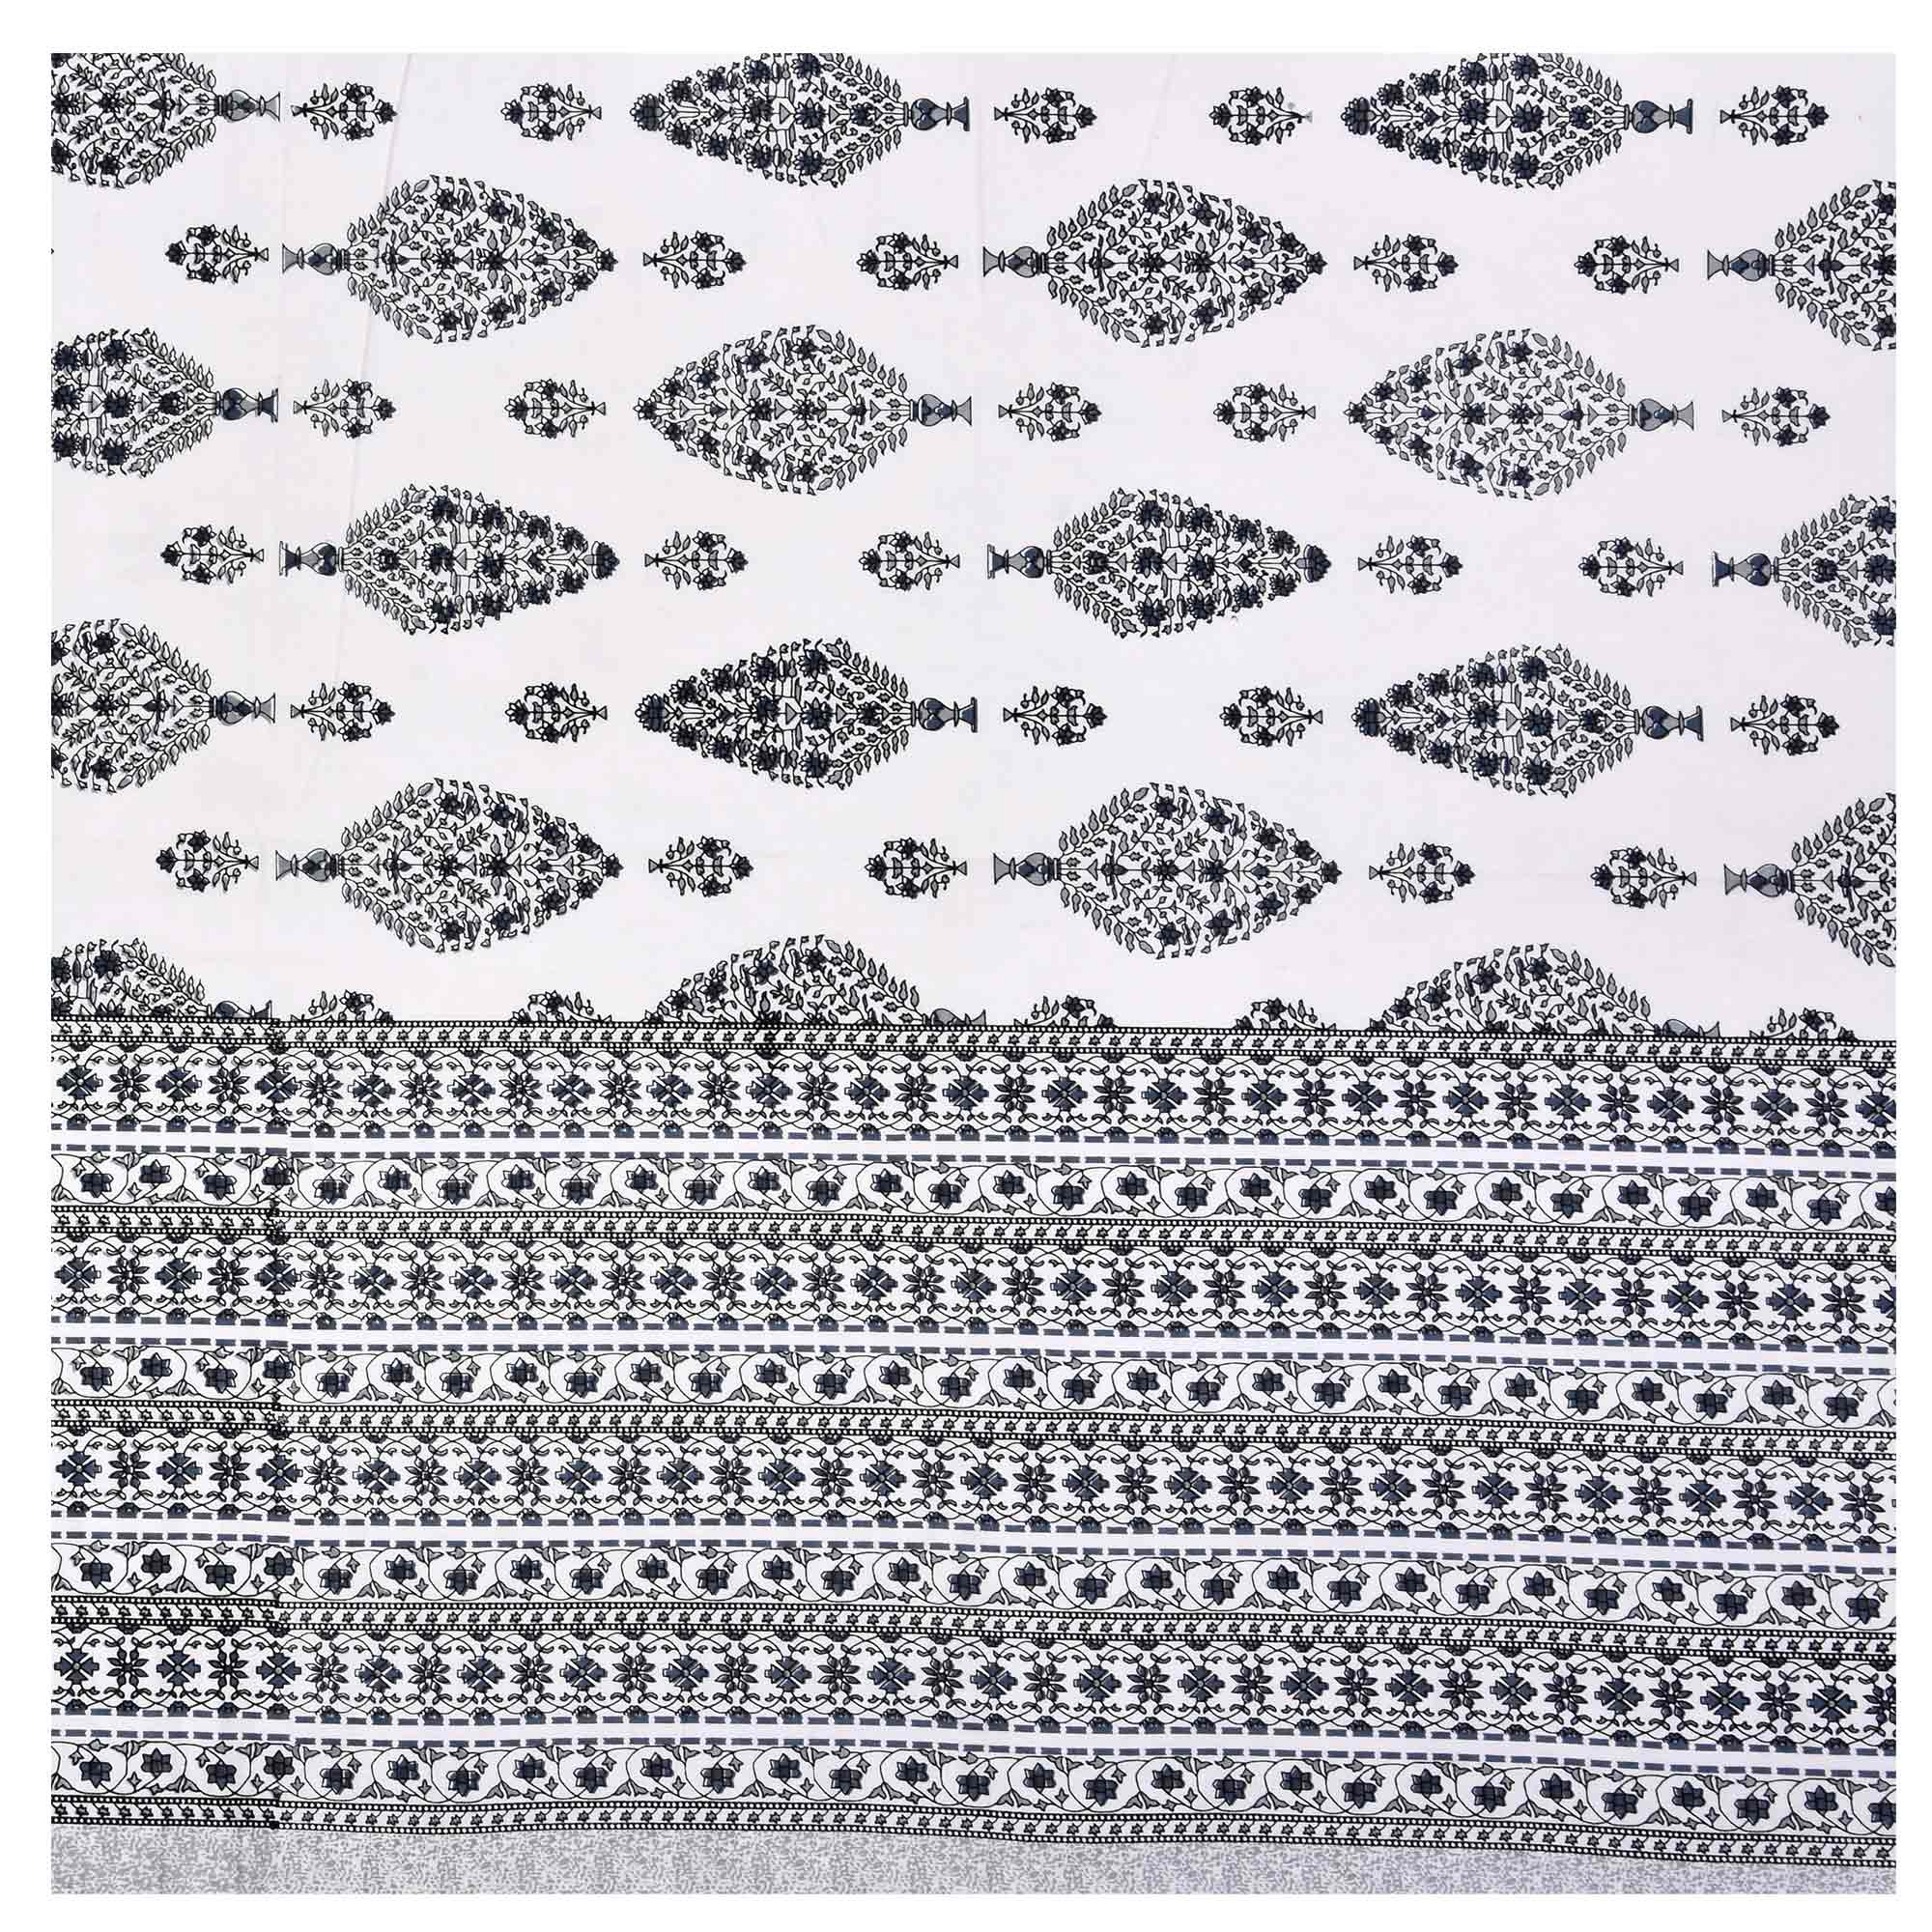 eCraftIndia - 144 TC Pure Cotton Premium Ethnic Jaipuri Print Double Bed Bedsheet (90 In x 108 In) with 2 pillow cover - Grey